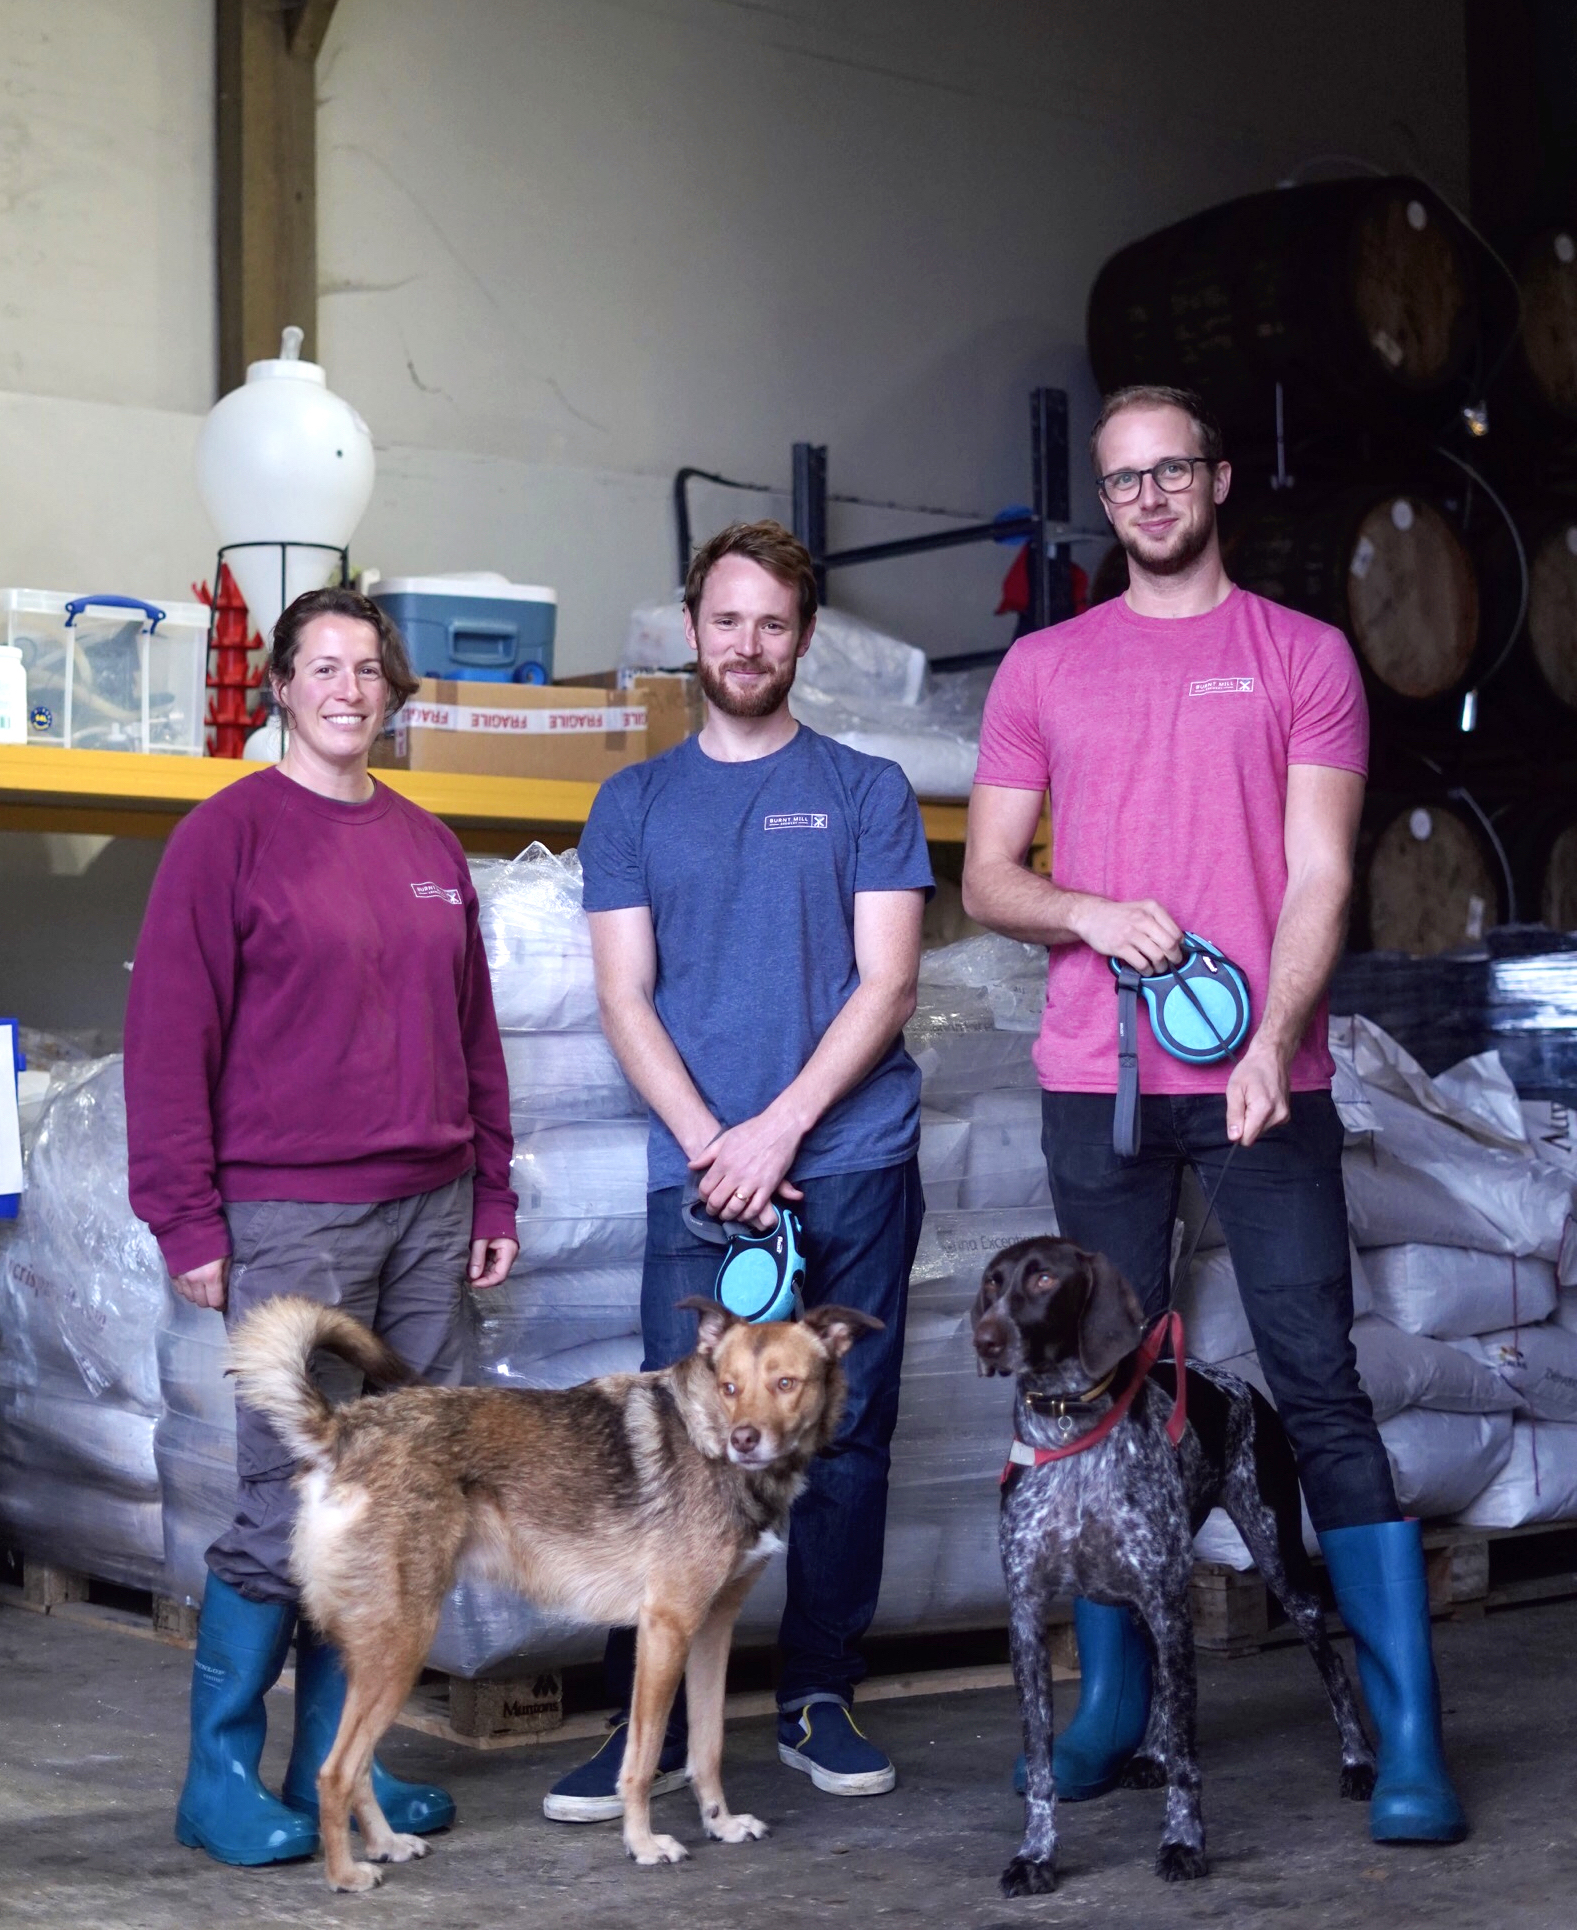 Forging their own path | Burnt Mill Brewery – The Brewers Journal